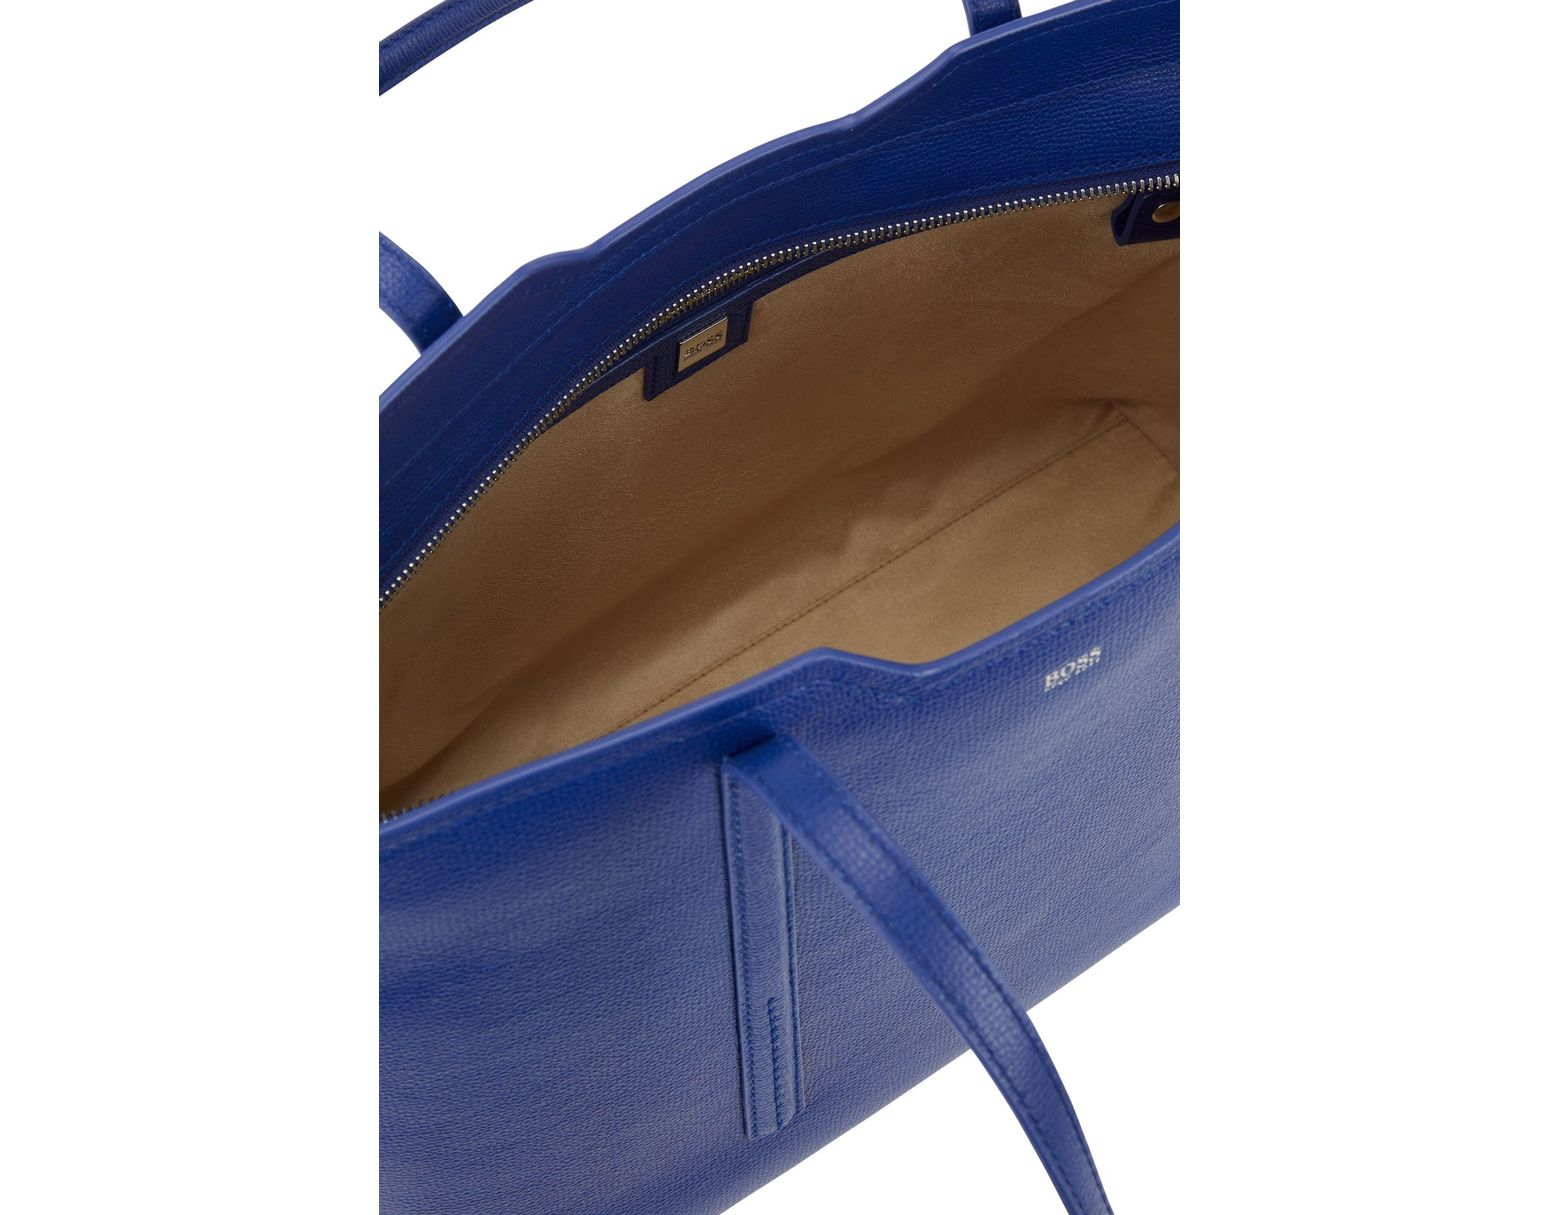 3a10be7abc BOSS Shopper Bag In Grained Italian Leather in Blue - Lyst